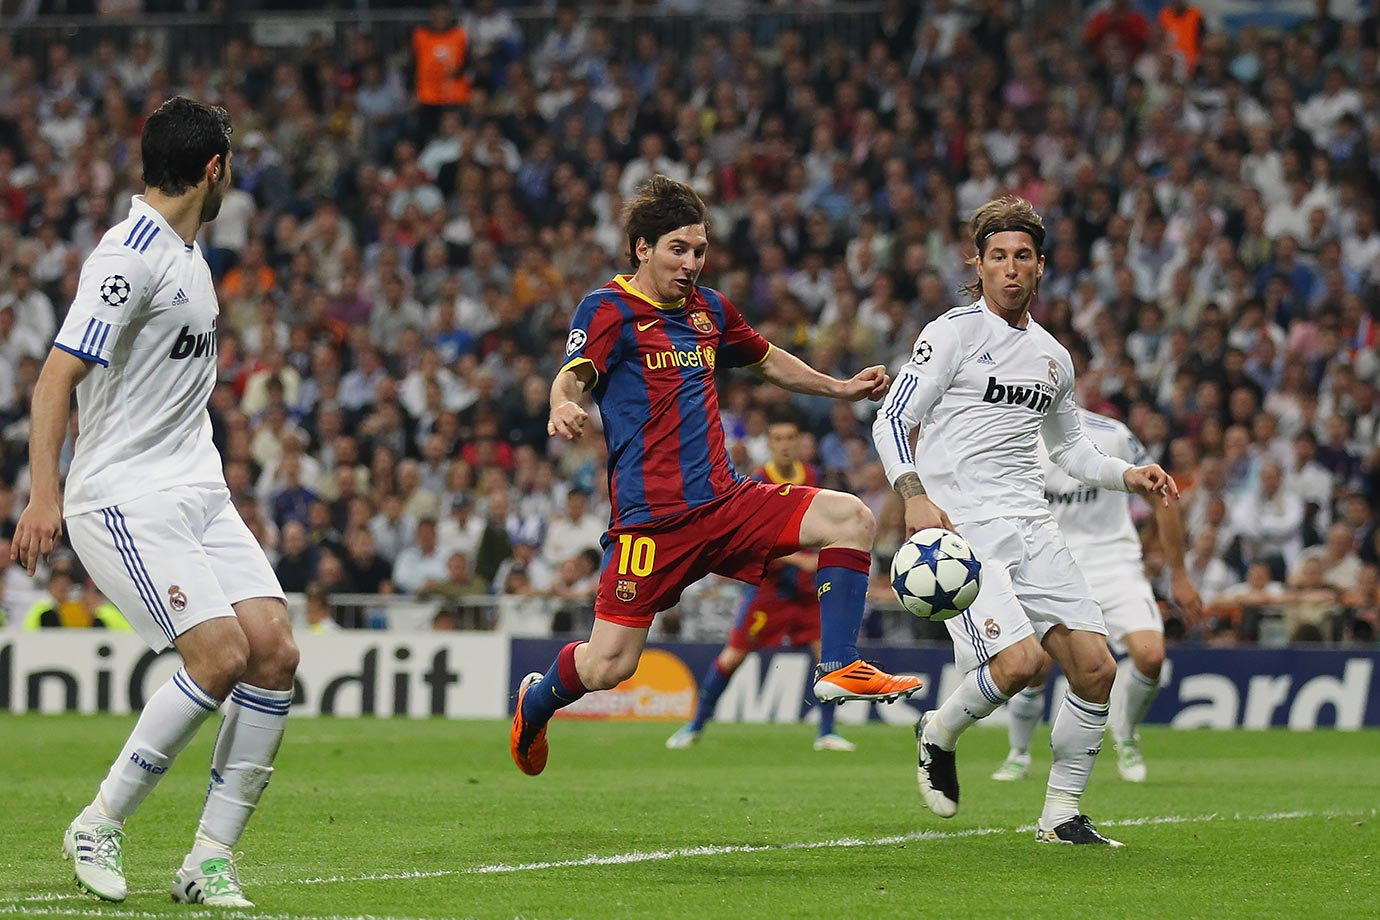 First leg of the Champions League semifinals. Lionel Messi scores twice en route to Barcelona advancing to the final it would eventually win. The second leg a week later capped a run of four Clasico's in 18 days.